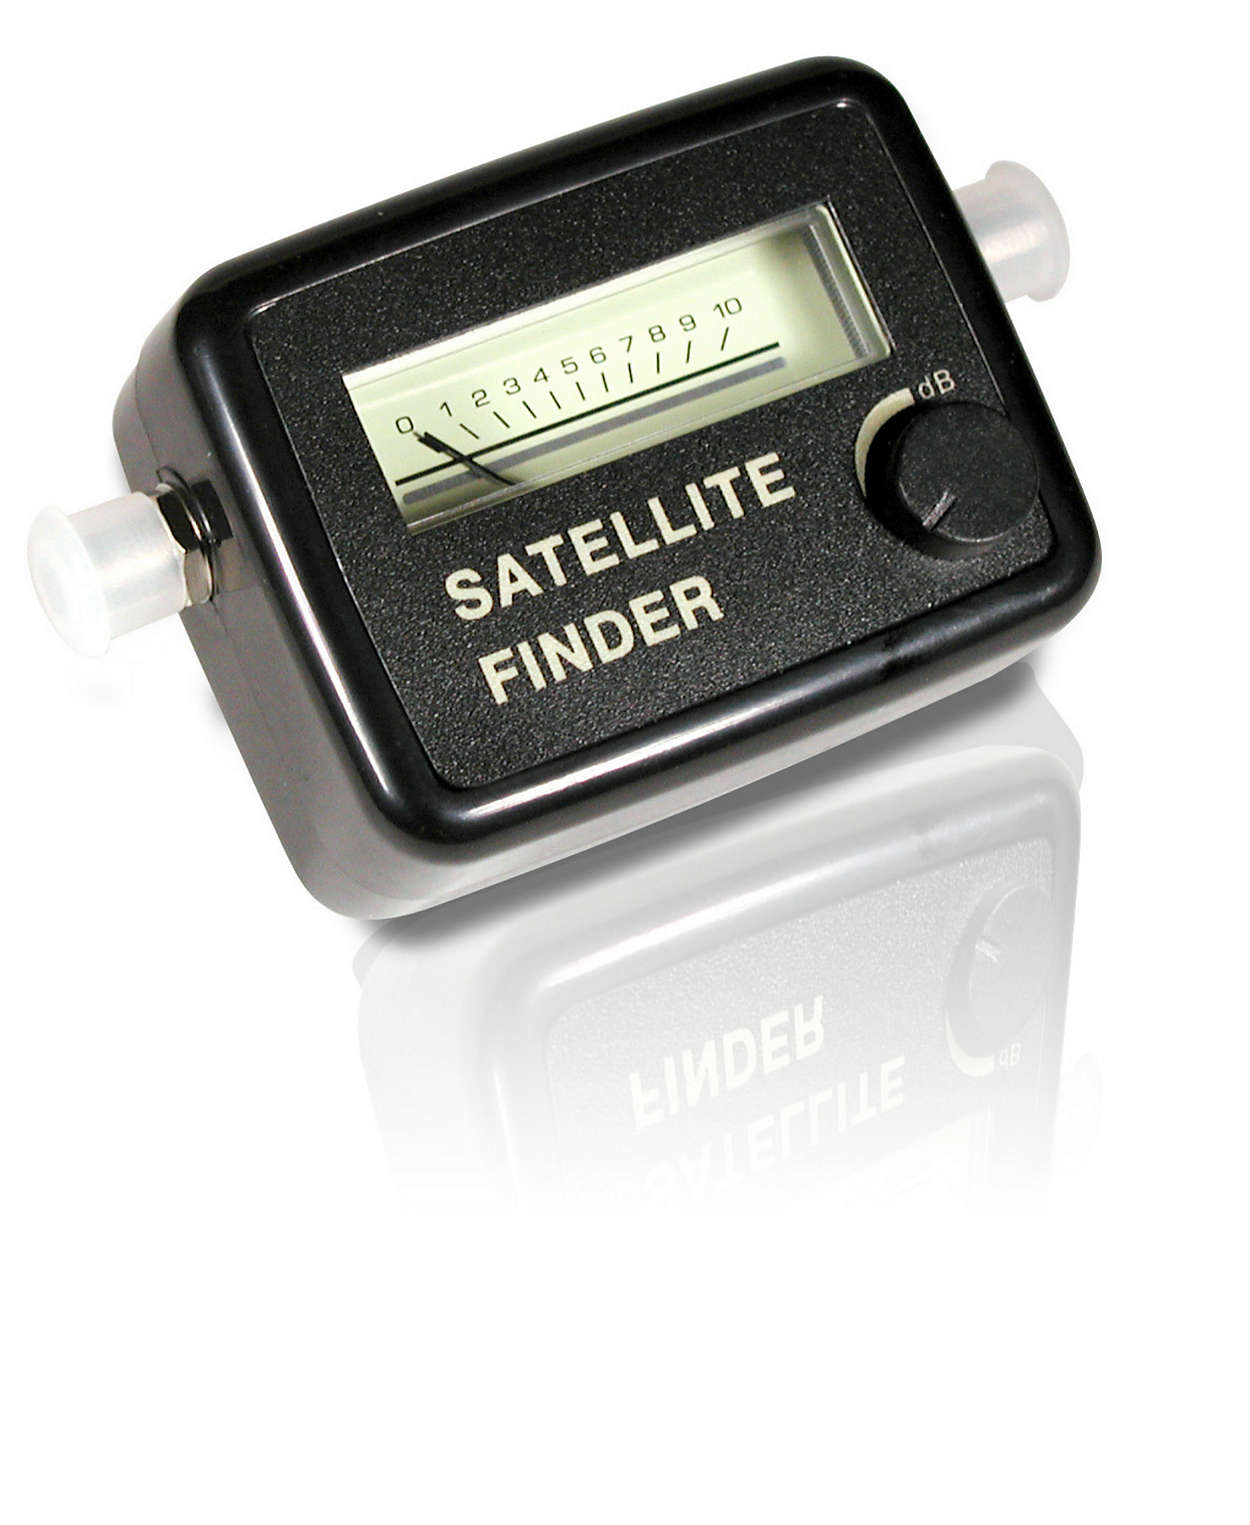 Easily locate your satellite signal